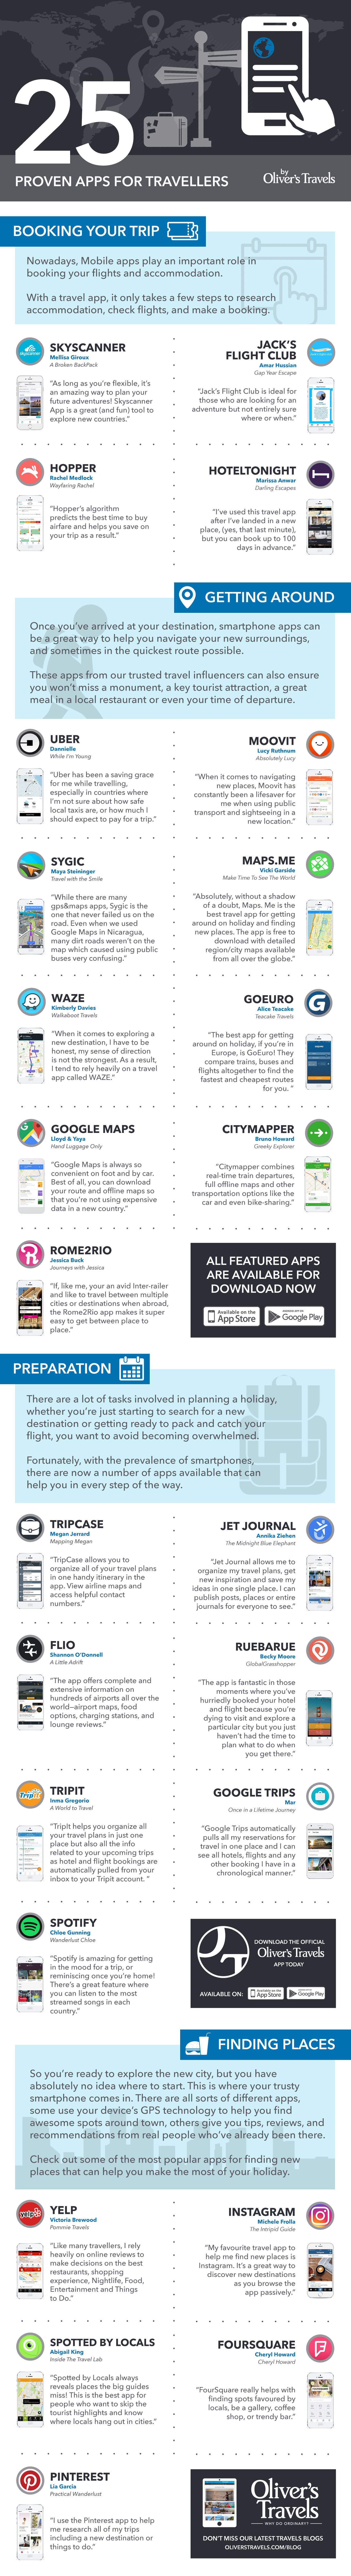 The 25 Best Travel Apps (Infographic) -BOOKING YOUR TRIP: Skyscanner App is a great (and fun) tool to explore new countries. As long as you are flexible, Skyscanner app is an amazing way to plan your future adventures! Jack Flight Club App is ideal for those who are looking for an adventure but not entirely sure where or when. Hopper App algorithm predicts the best time to buy airfare and helps you save on your trip as a result. HotelTonight travel app can be used after you have landed in a new place, (yes, that last minute), but you can book up to 100 days in advance. GETTING AROUND: Once you have arrived at your destination, smartphone apps can be a great way to help you navigate your new surroundings, and sometimes in the quickest route possible. These apps from our trusted travel influencers can also  a monument, a key tourist attraction, a great meal in a local restaurant or even your time of departure. Uber App has been a saving grace for me while travelling, especially in countries where I am not sure about how safe local taxis are, or how much I should expect to pay for a trip. When it comes to navigating new places, Moovit app has constantly been a lifesaver for me when using public transport and sightseeing in a new location. While there are many gps&maps apps, Sygic appis the one that never failed us on the road. Even when we used Google Maps in Nicaragua, many dirt roads were not on the map which caused using public buses very confusing. Absolutely, without a shadow of a doubt, Maps.Me is the best travel app for getting around on holiday and finding new places. The app is free to download with detailed region or city maps available from all over the globe. When it comes to exploring a new destination, I have to be honest, my sense of direction is not the strongest. As a result, I tend to rely heavily on a travel app called WAZE. The best app for getting around on holiday, if you are in Europe, is GoEuro! They compare trains, buses and flights altogether 